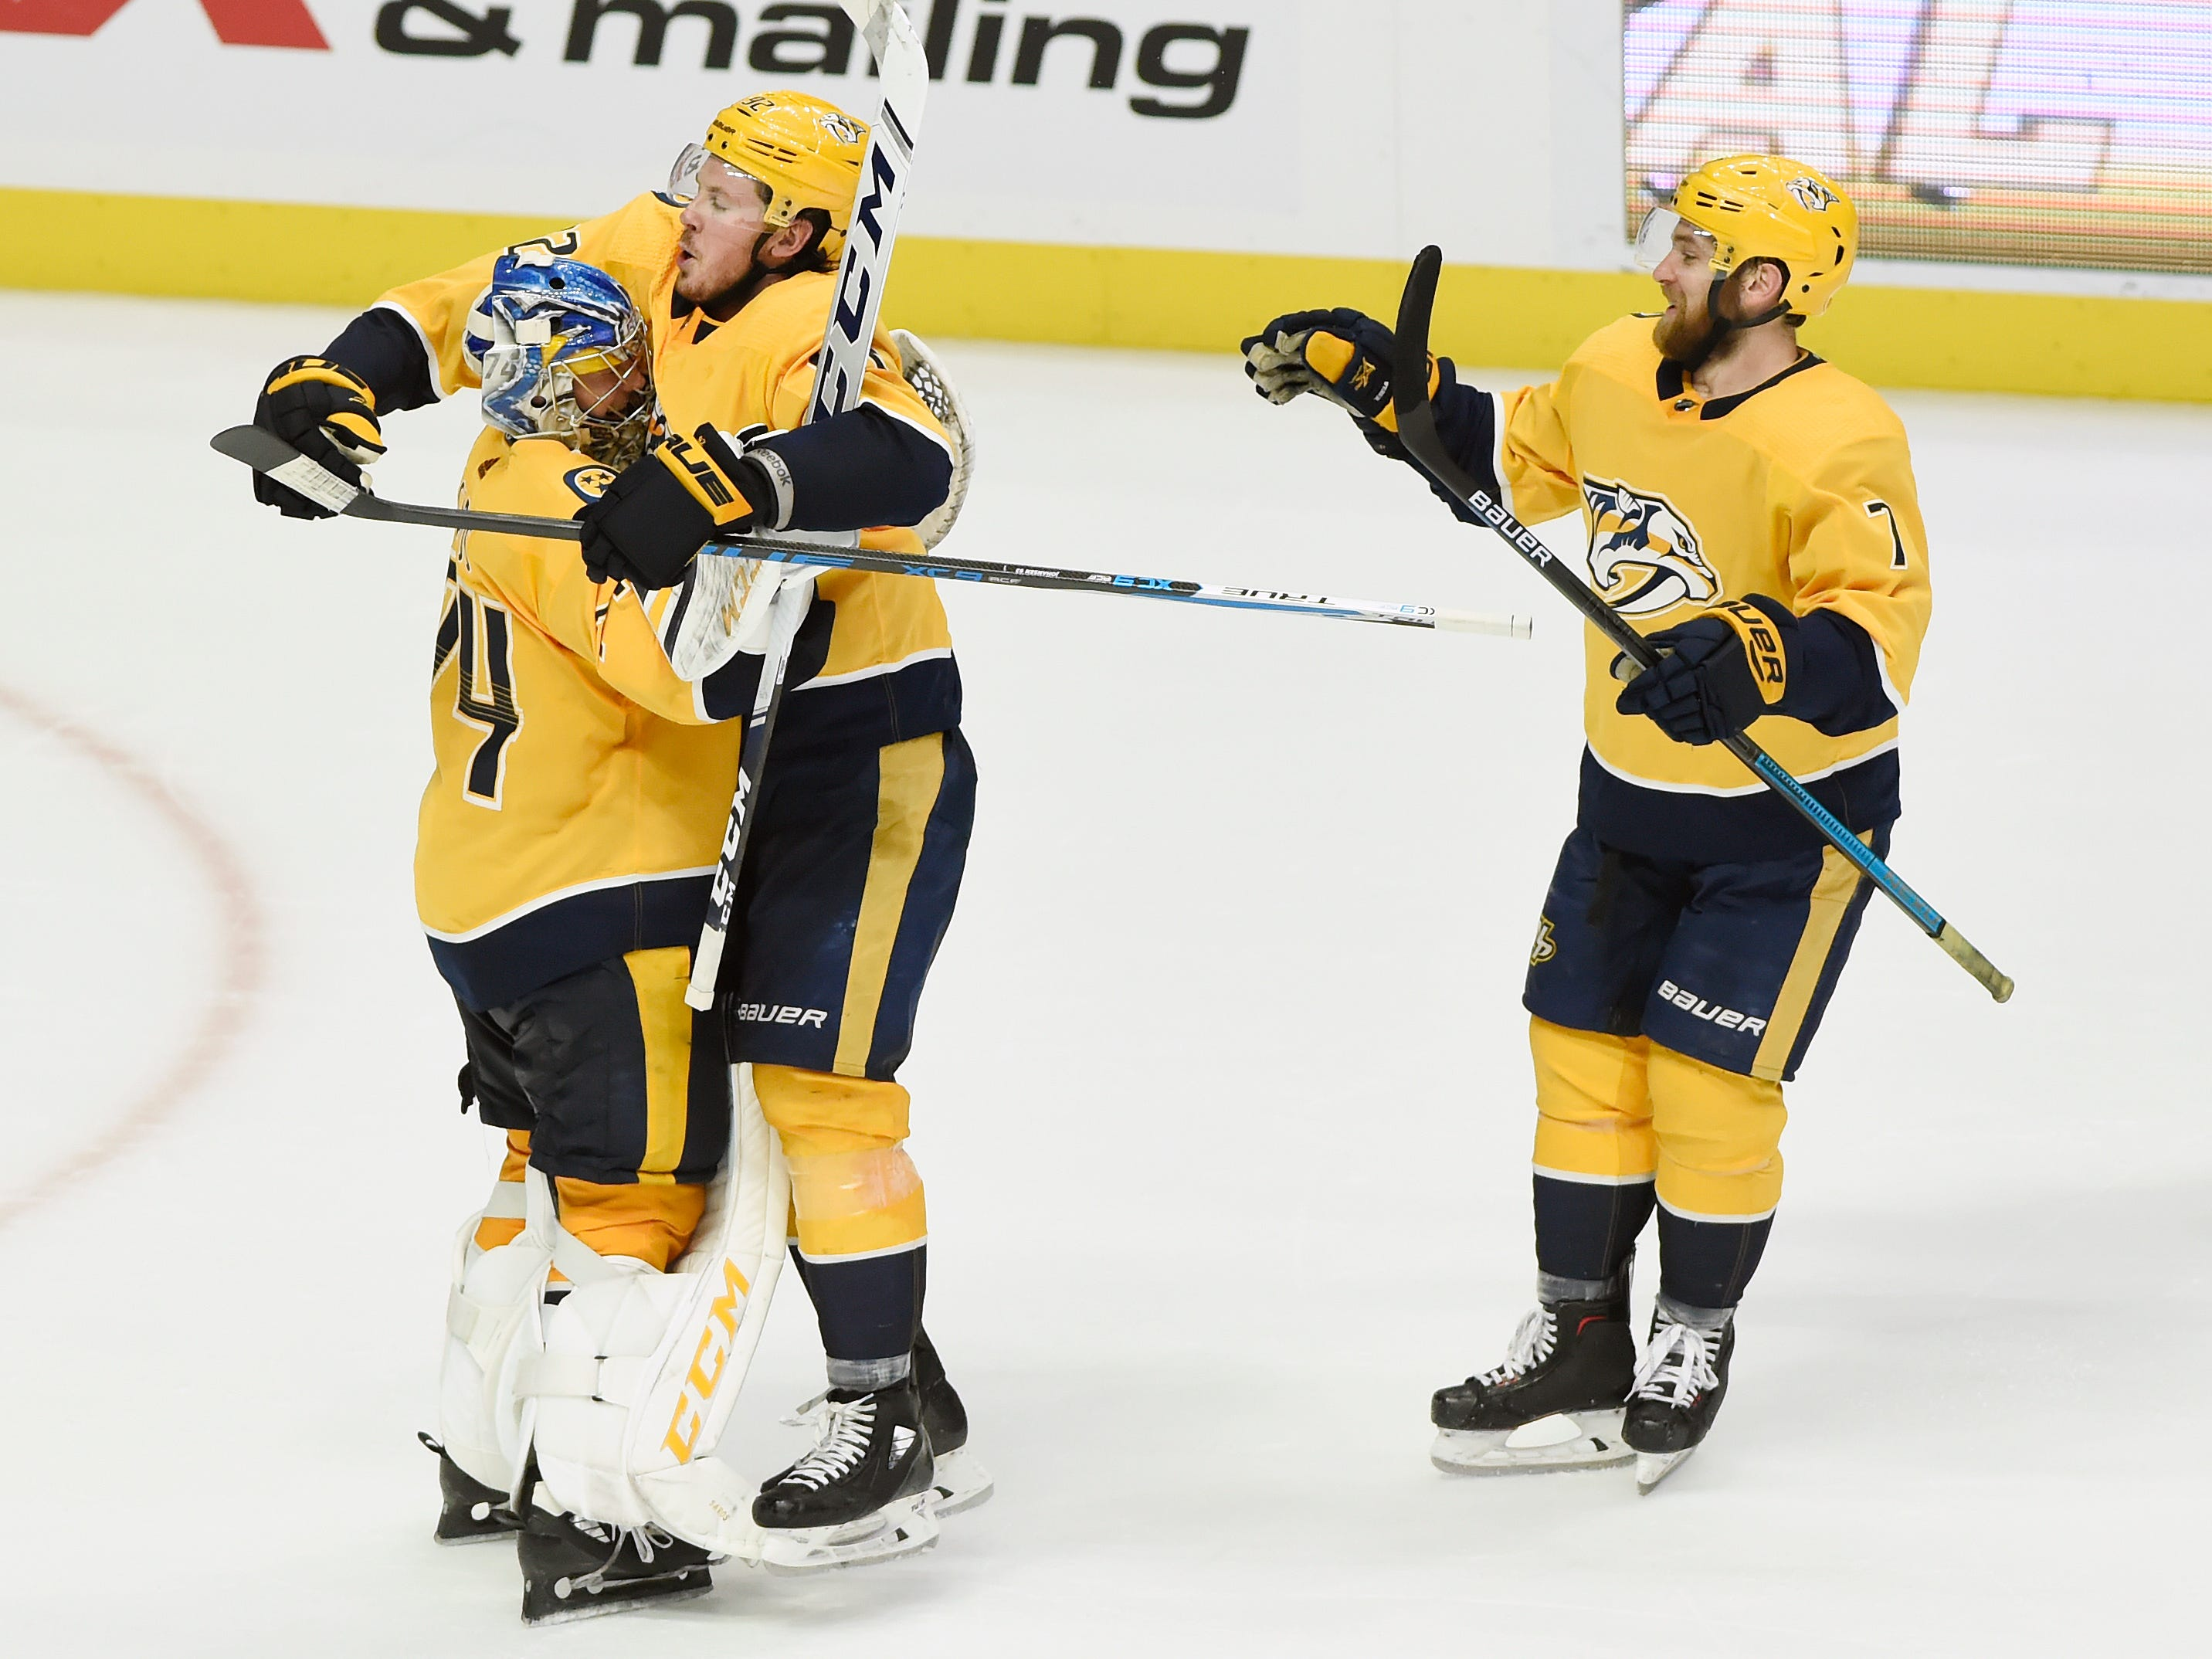 Dec 15: Predators 2, Devils 1 (OT) -- Nashville Predators center Ryan Johansen (92) celebrates with goaltender Juuse Saros (74) after the team's win against the New Jersey Devils in a shootout of an NHL hockey game Saturday, Dec. 15, 2018, in Nashville, Tenn. Predators defenseman Yannick Weber (7) joins in. The Predators won 2-1.